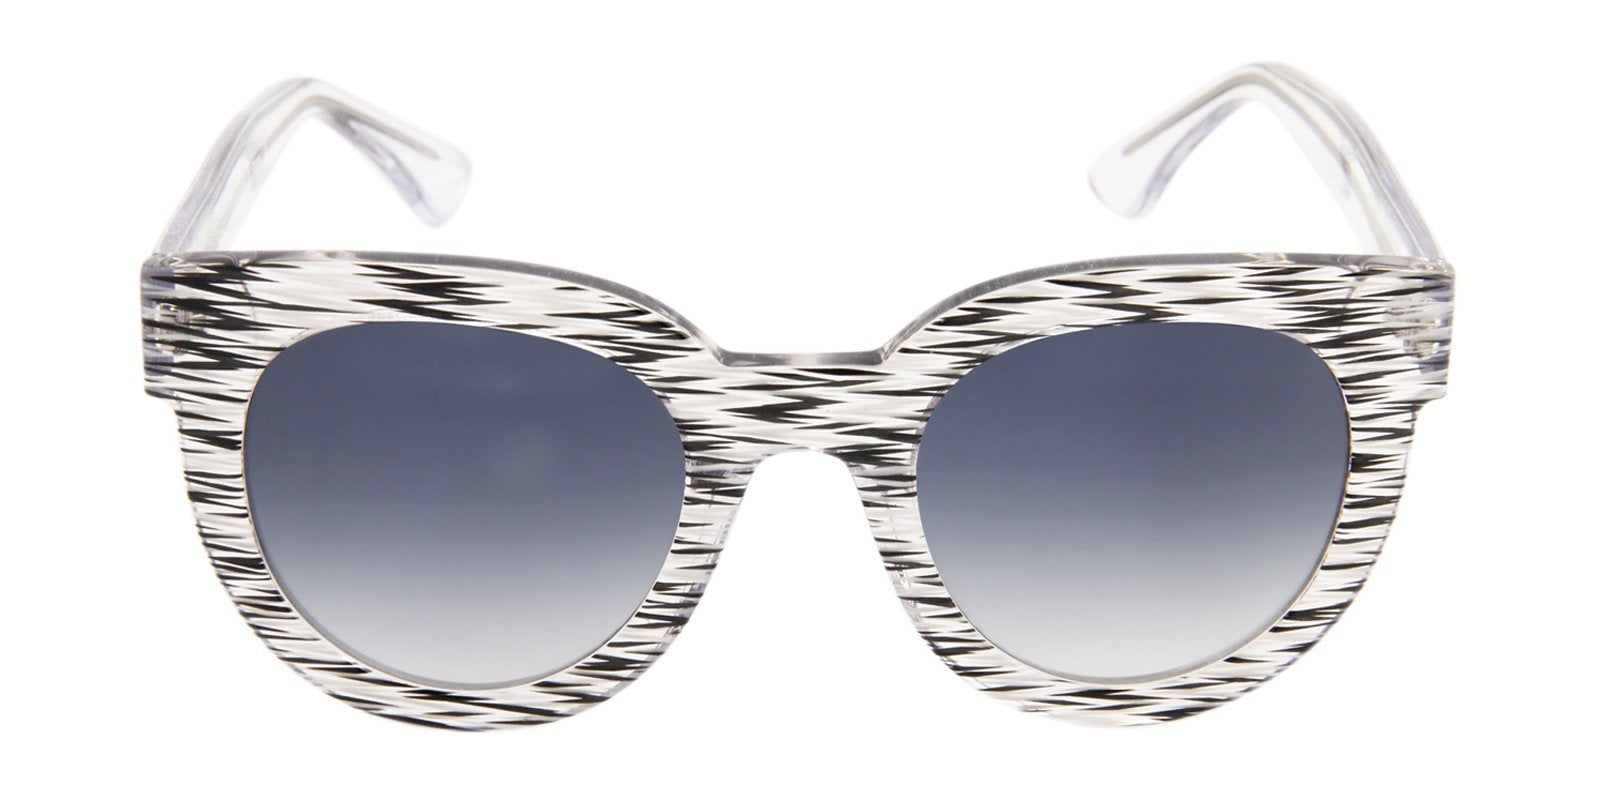 Thierry Lasry - Therapy White Oval Women Sunglasses - 50mm-Sunglasses-Designer Eyes